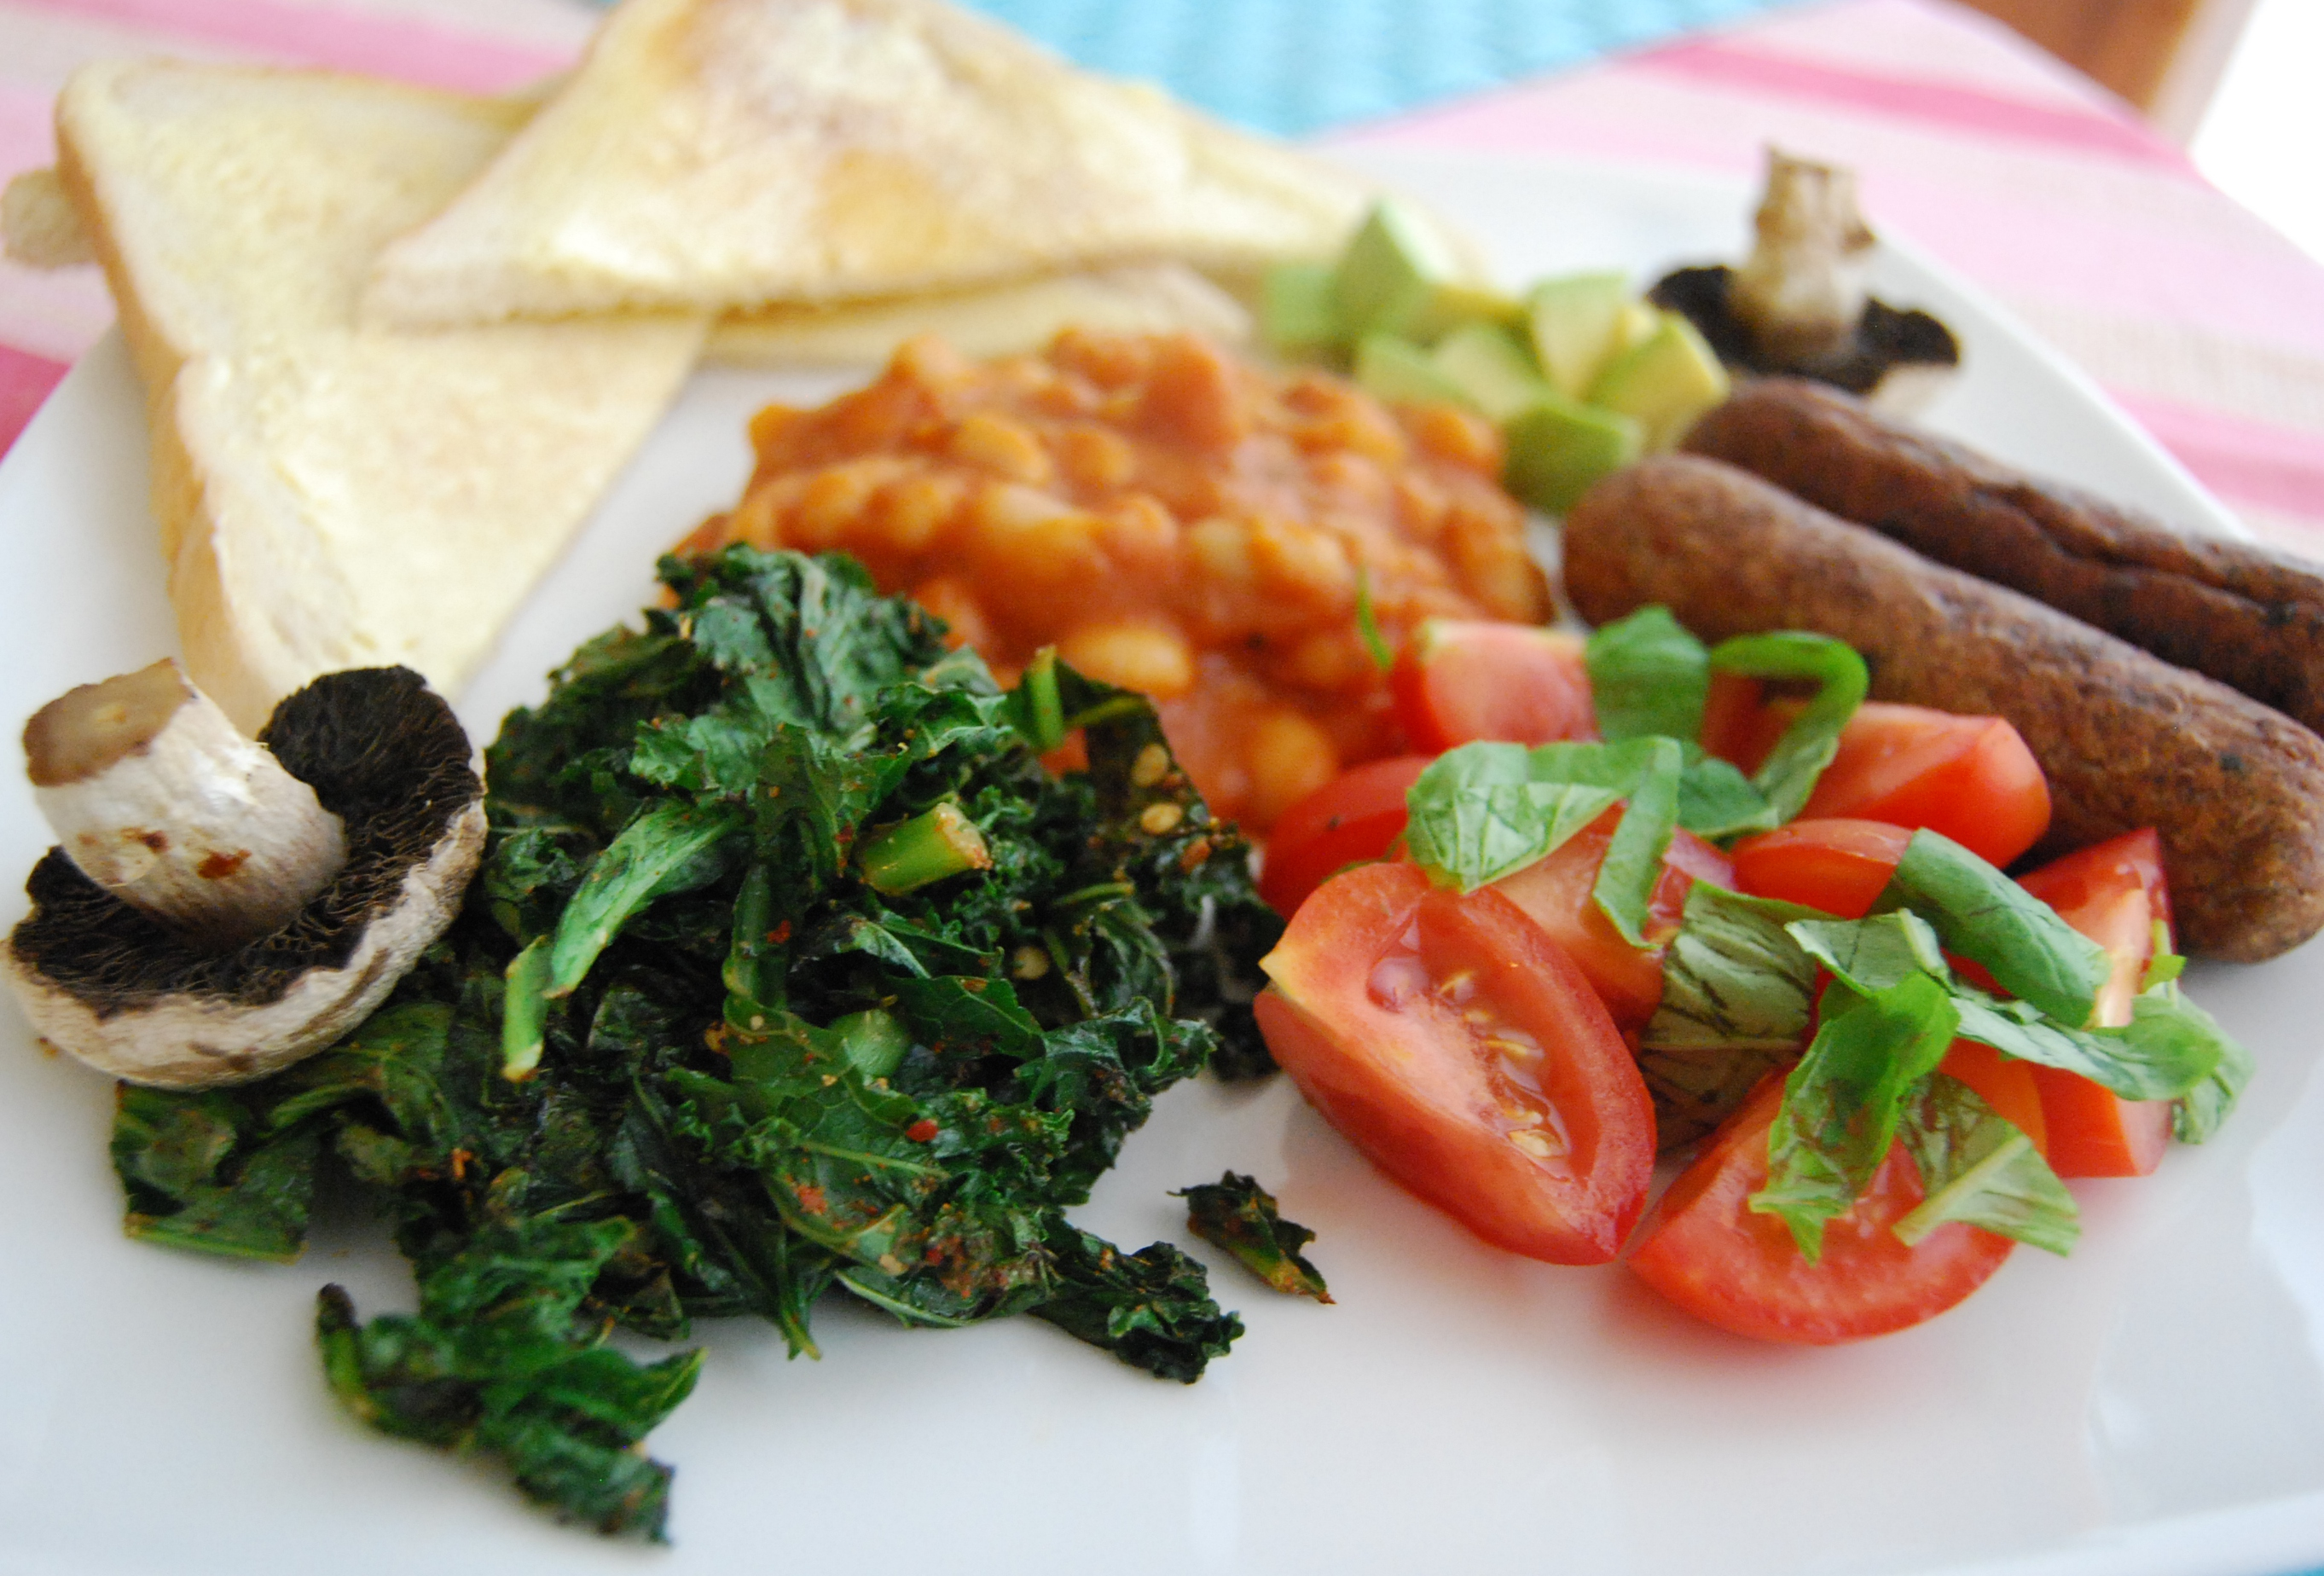 Full english breakfast veghotpot style vegan mofo veghotpot ok here is my mammoth recipe for this feast of a vegan full english recipe feel free to just try individual aspects of the meal and do let me know if you forumfinder Choice Image